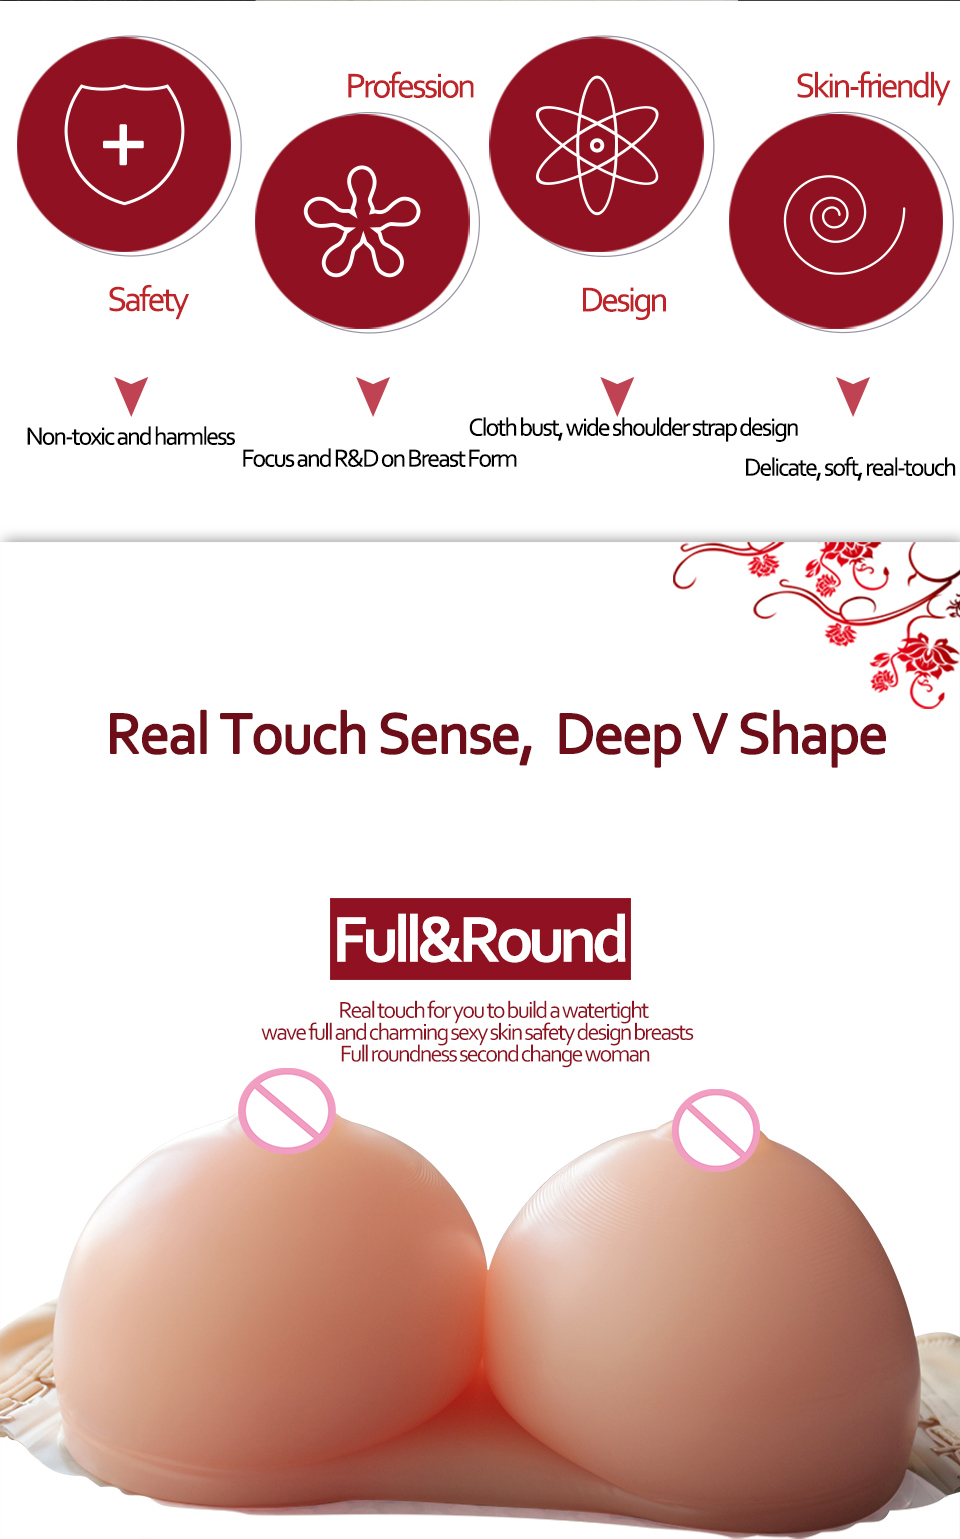 Silicone Enhancers Lifelike False Boobs Fake Breast Forms for Crossdresser Transgender Mastectomy02